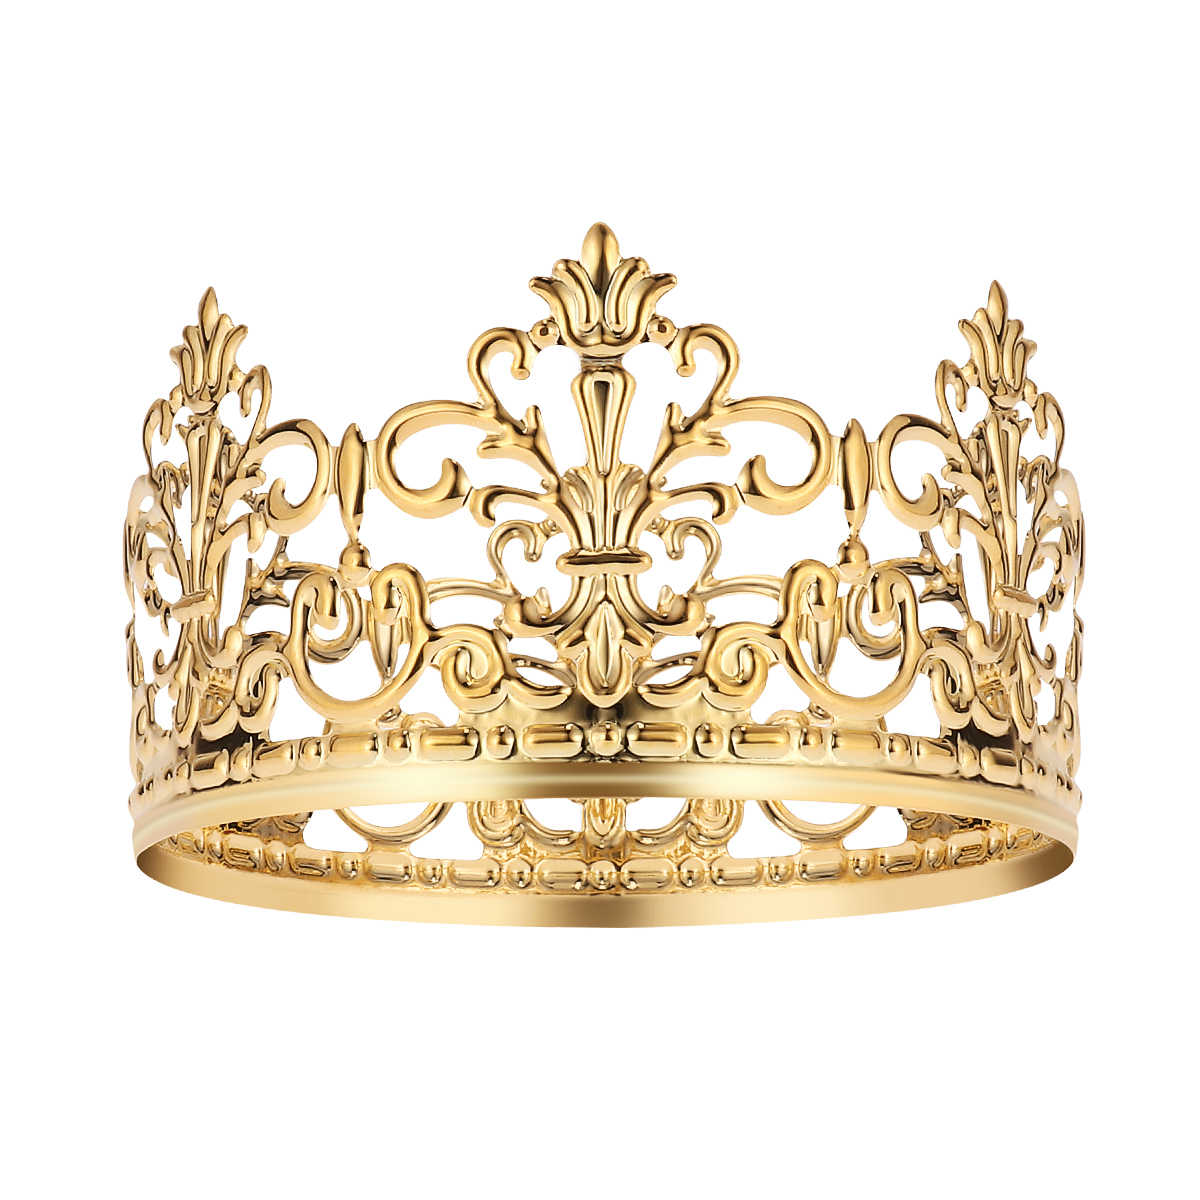 1pc Cake Topper Tiara Crown Party Cake Decoration Crown Hair Ornaments Wedding Supplies Accessories (Gold)